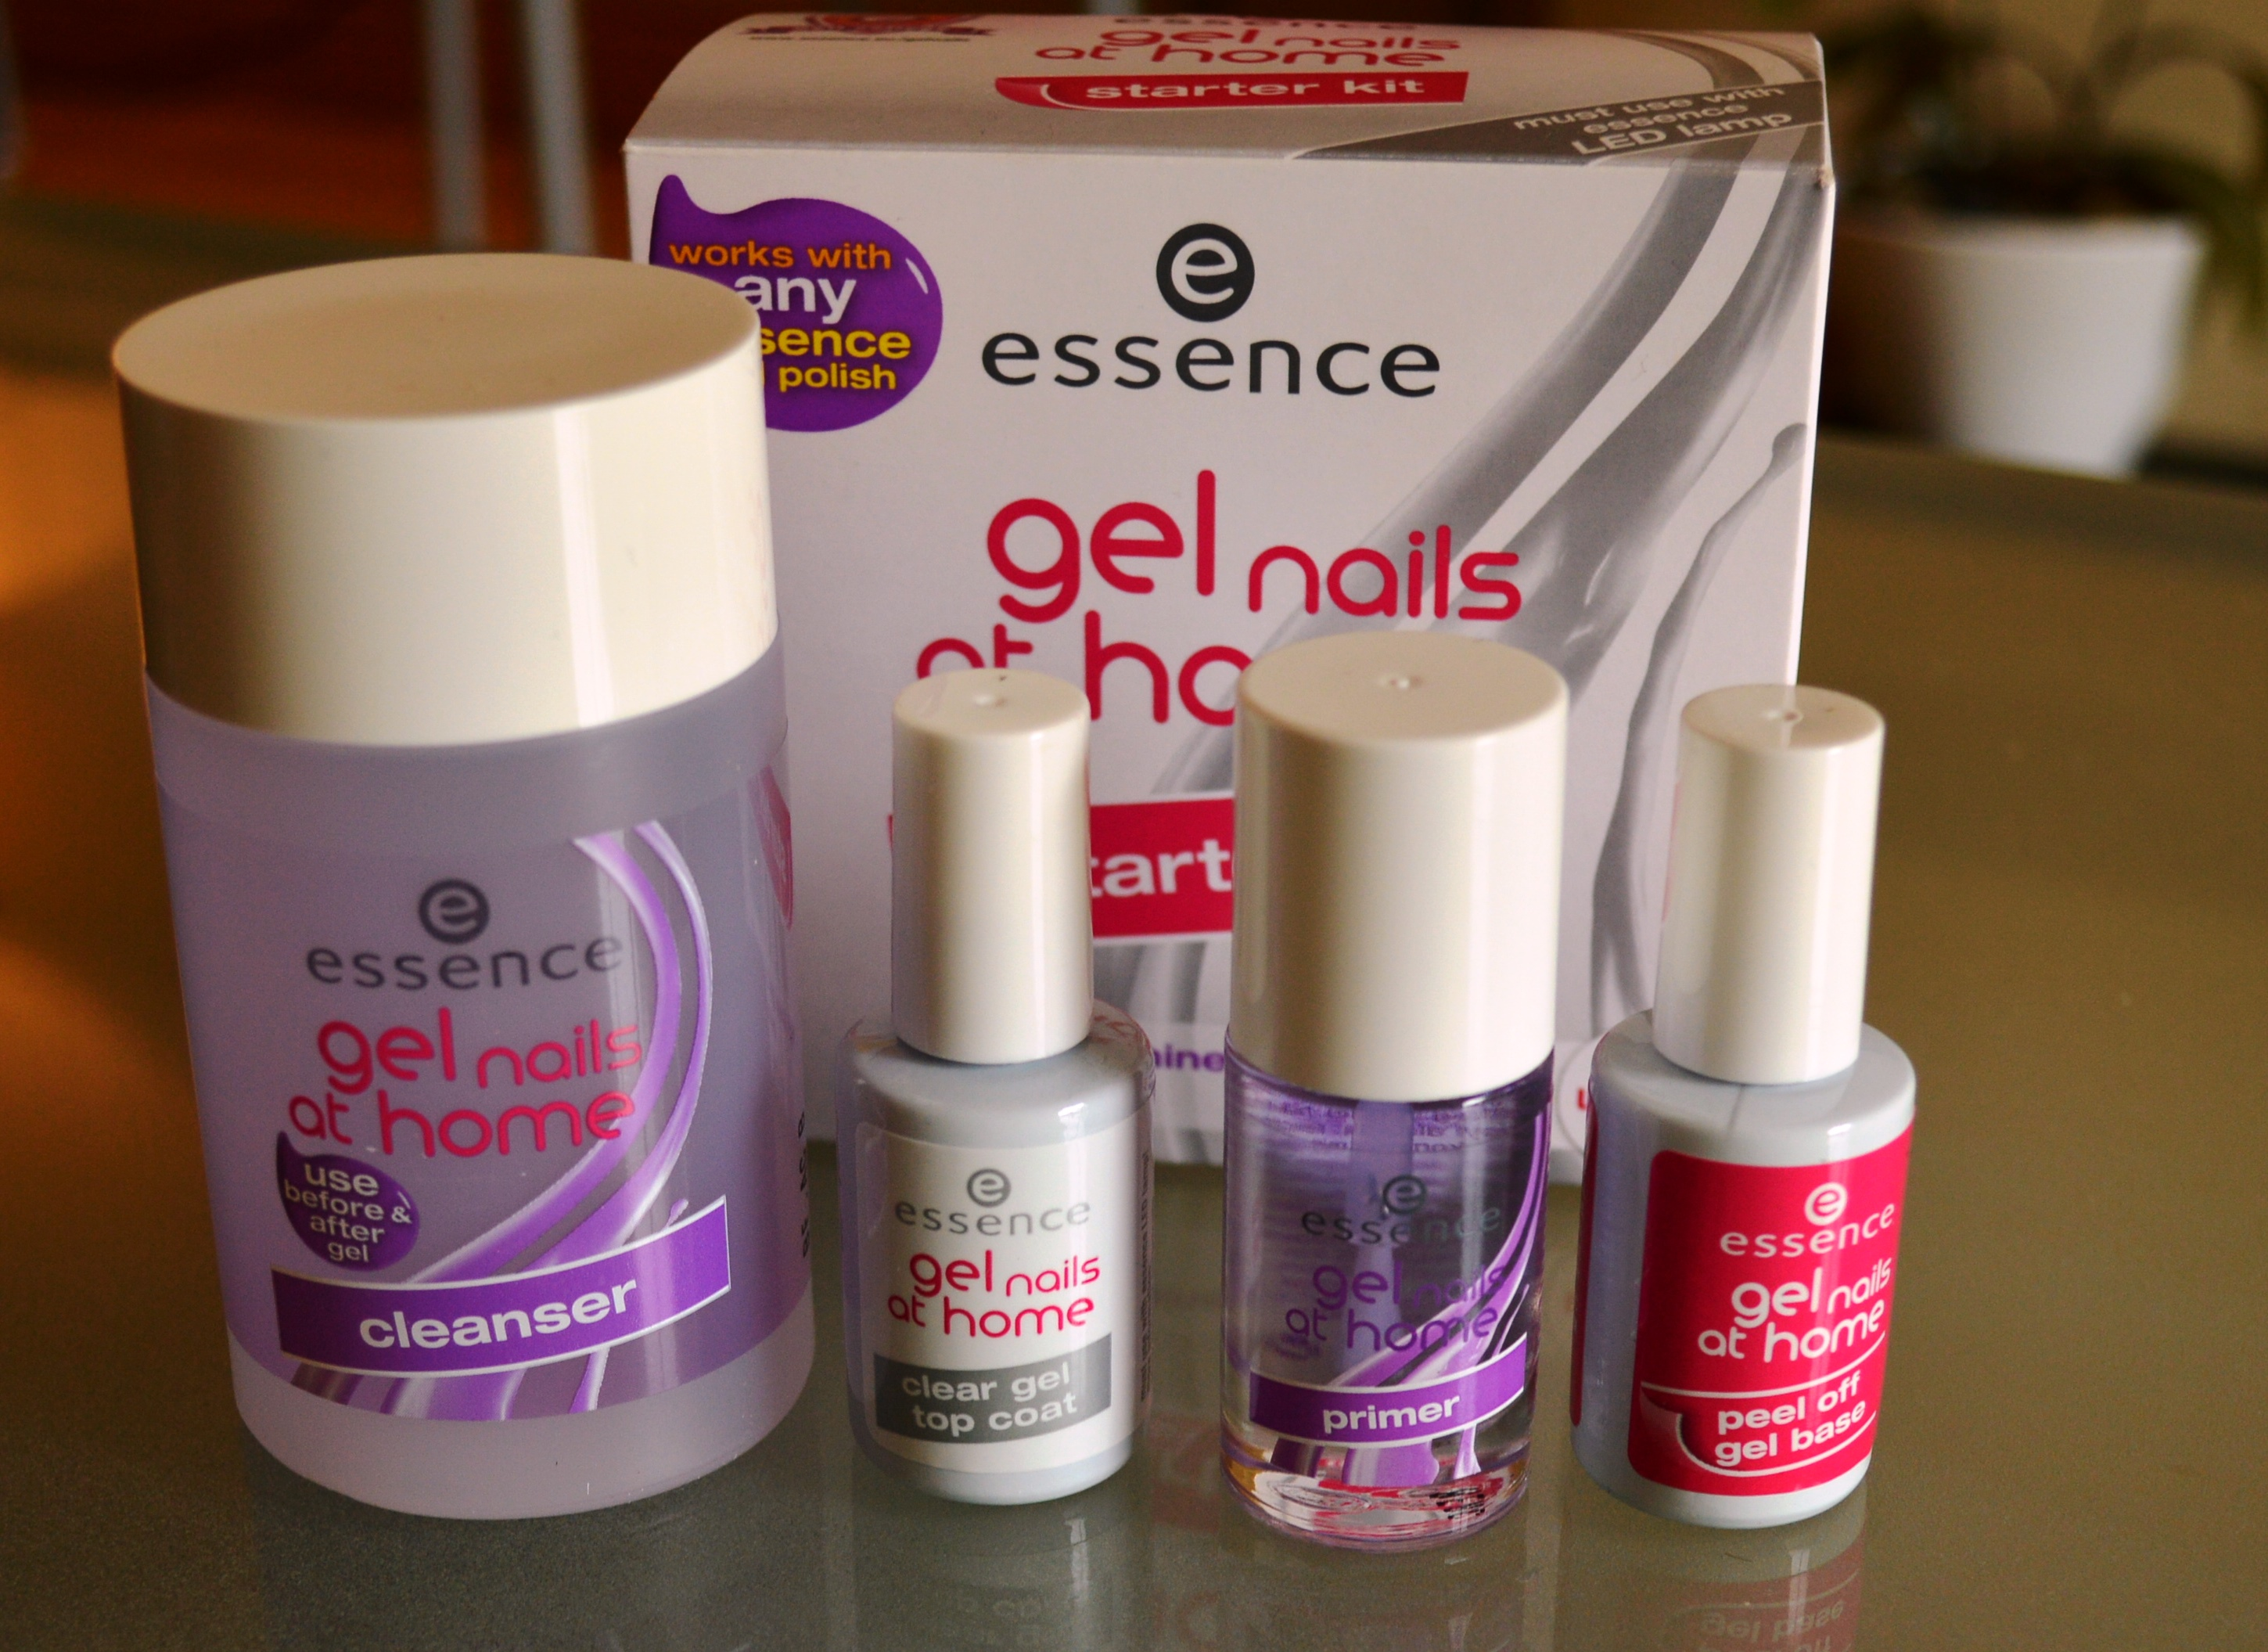 At home gel nails kit - Expression Nails